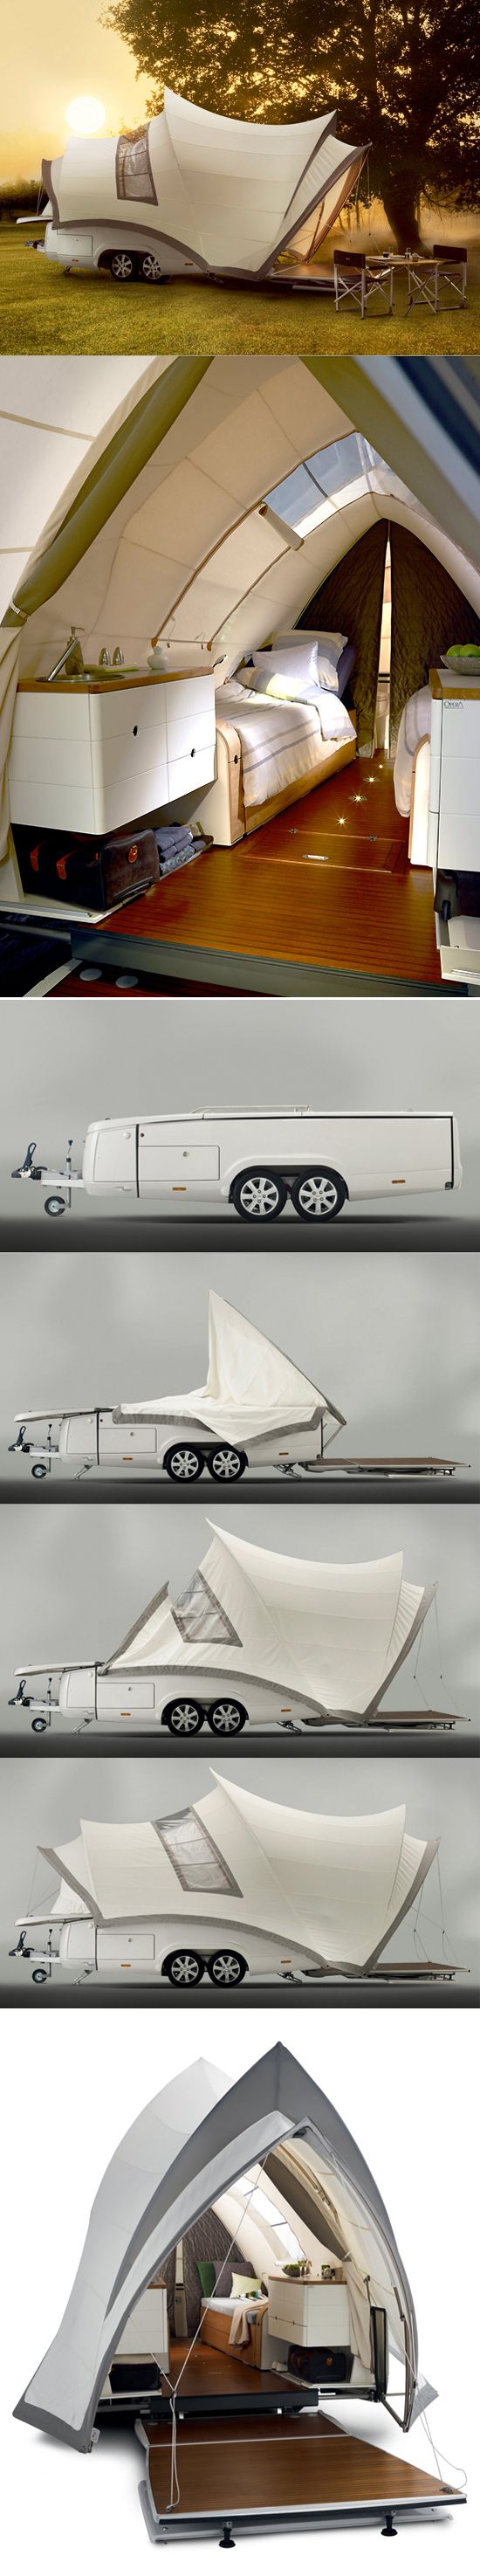 The Opera - A Private Suite On Wheels My idea of camping!